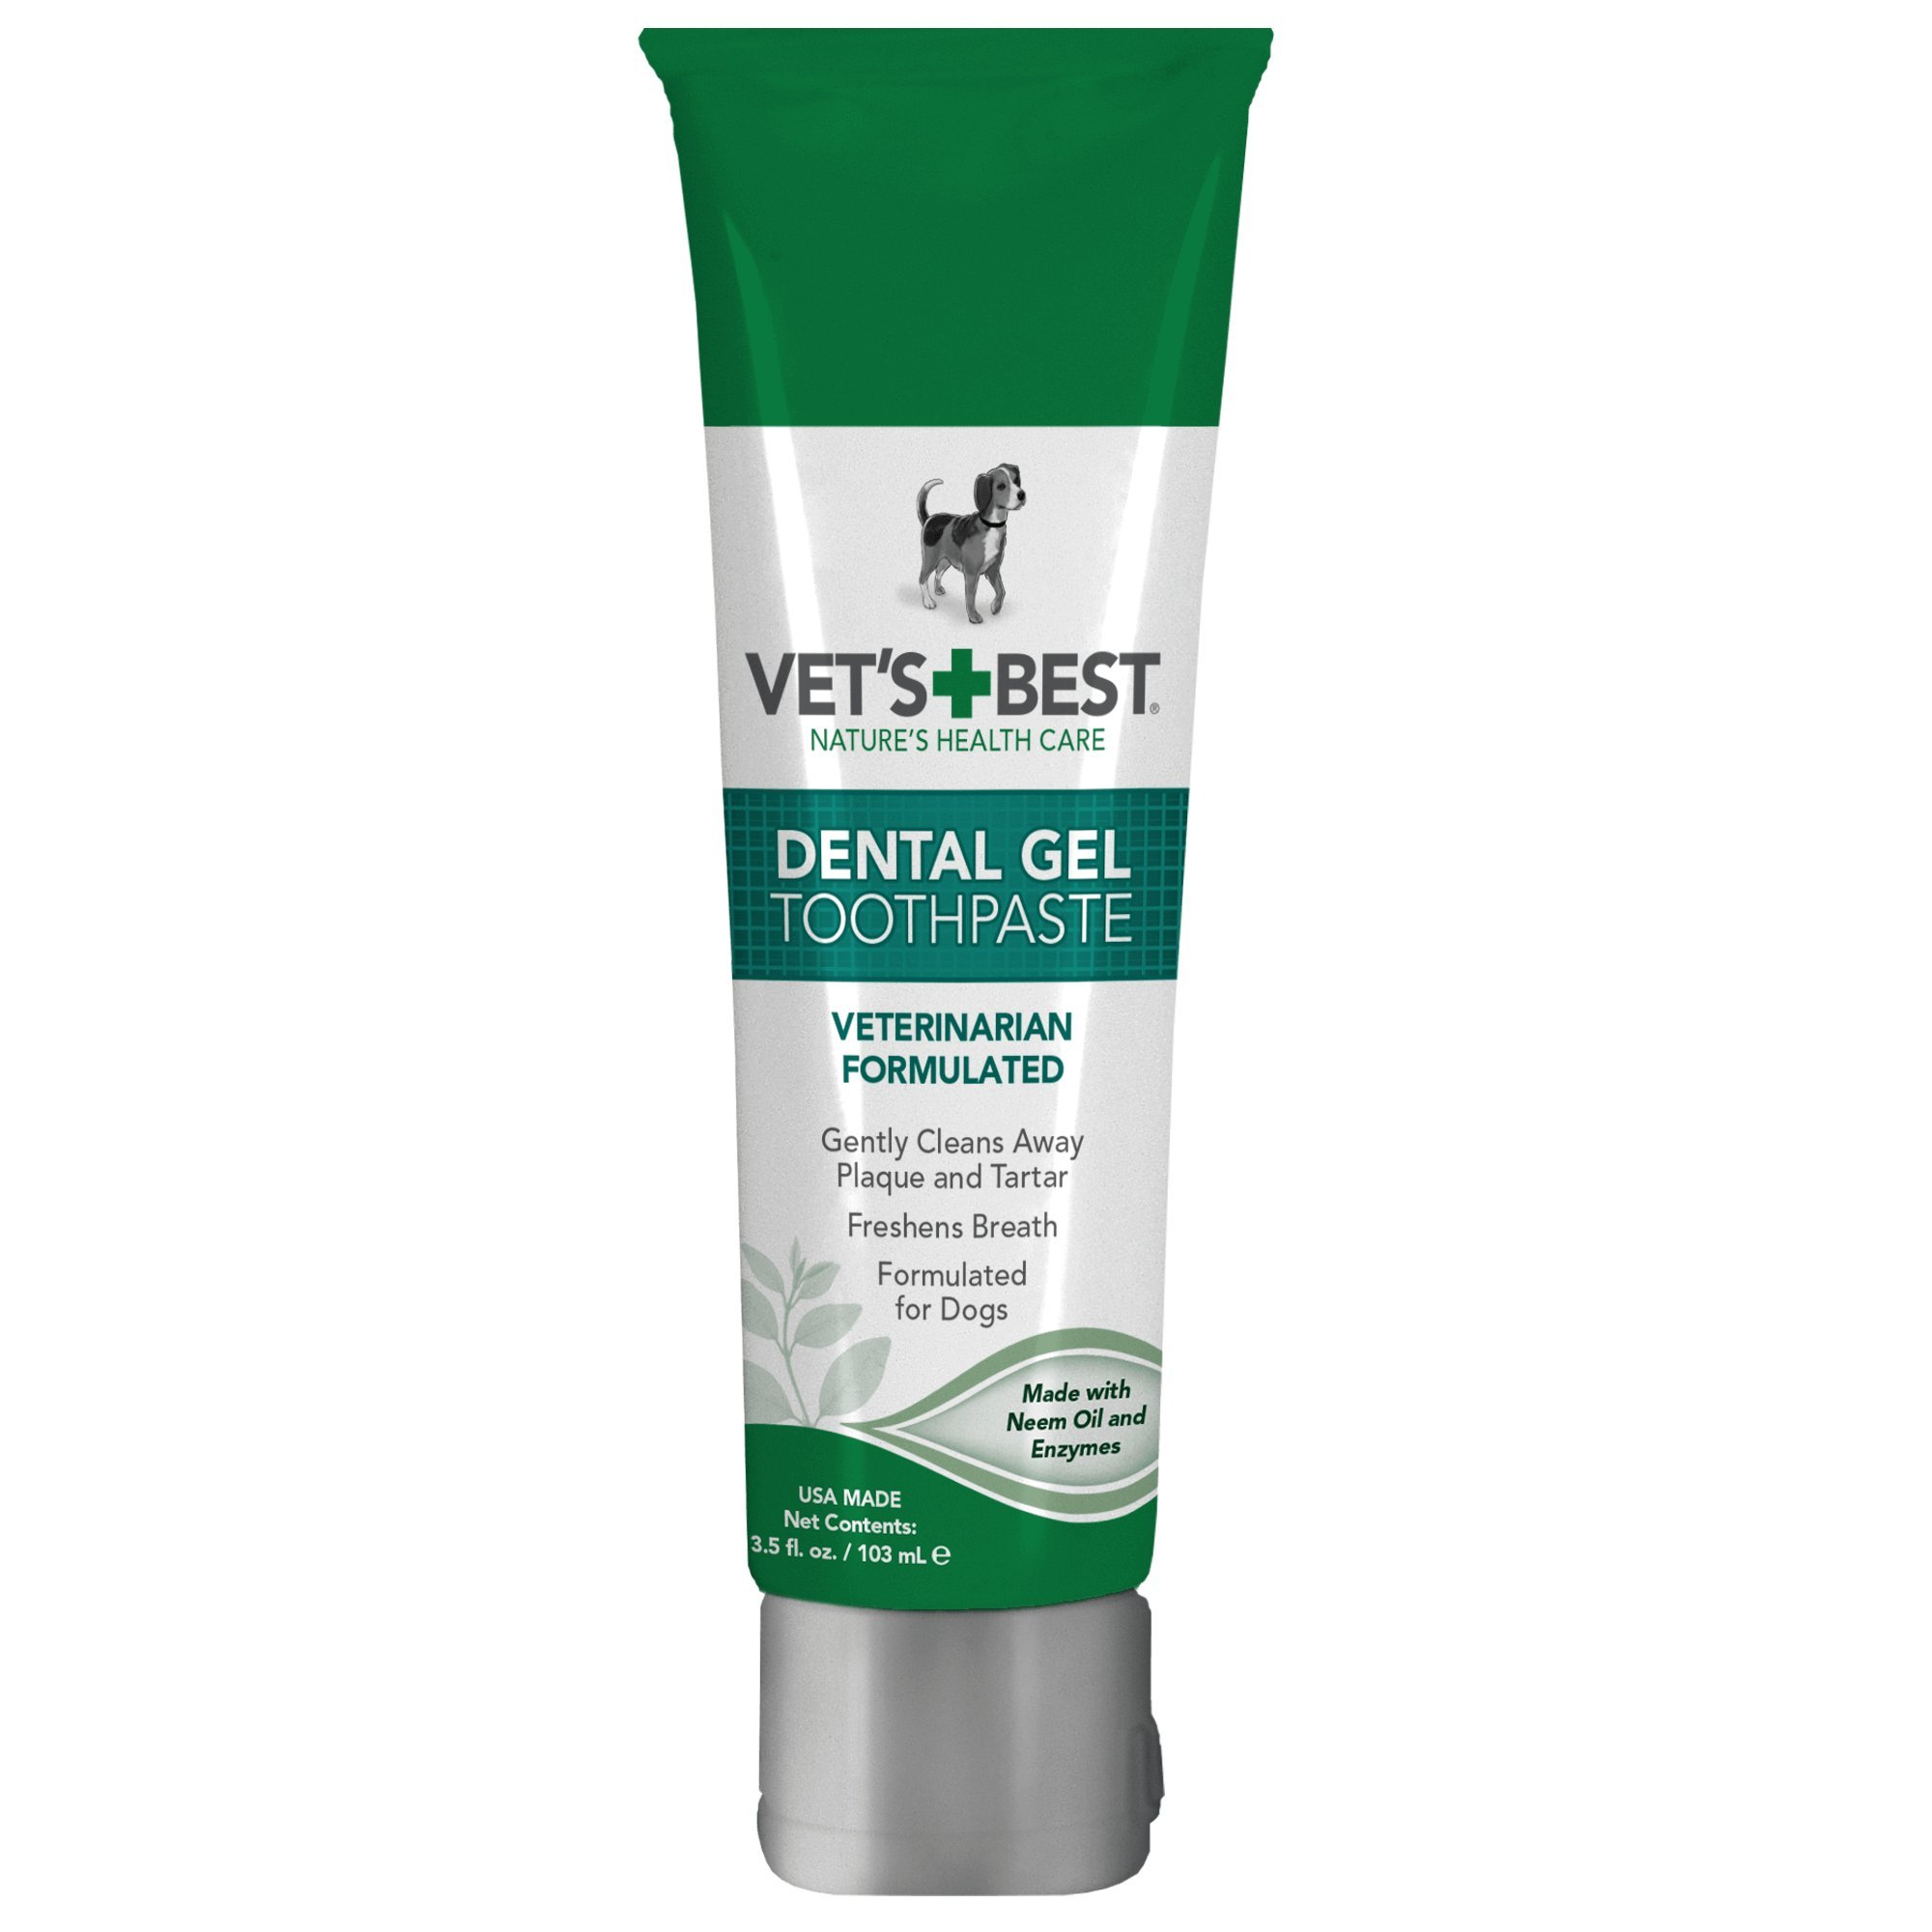 Vet's Best Enzymatic Dental Gel Toothpaste for Dogs, USA Made